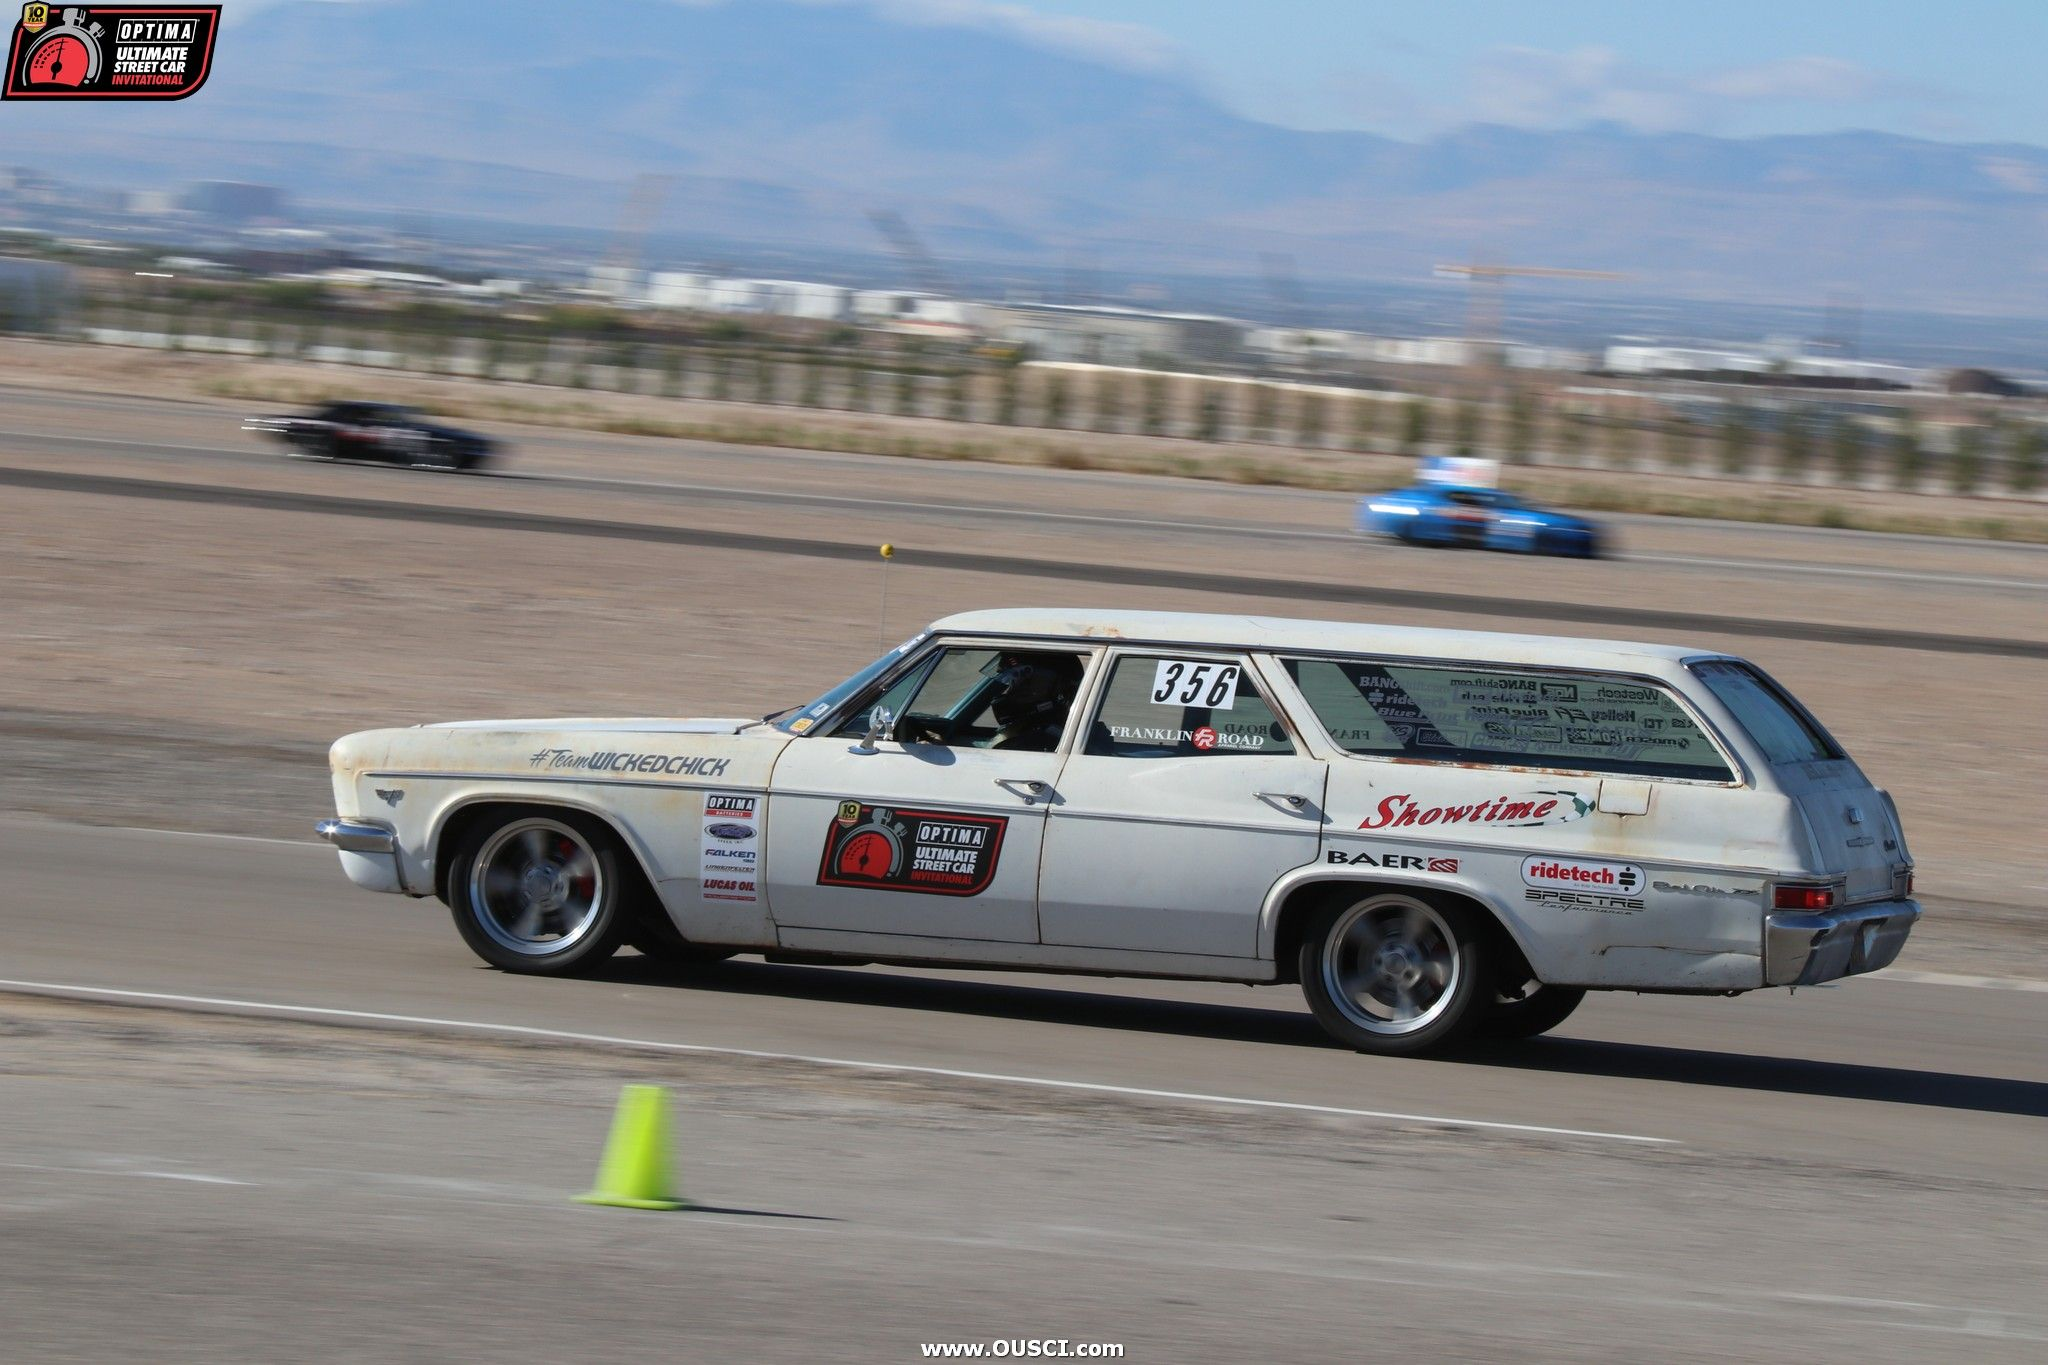 Chad Reynolds 1966 Chevrolet Belair Stationwagon At The 2017